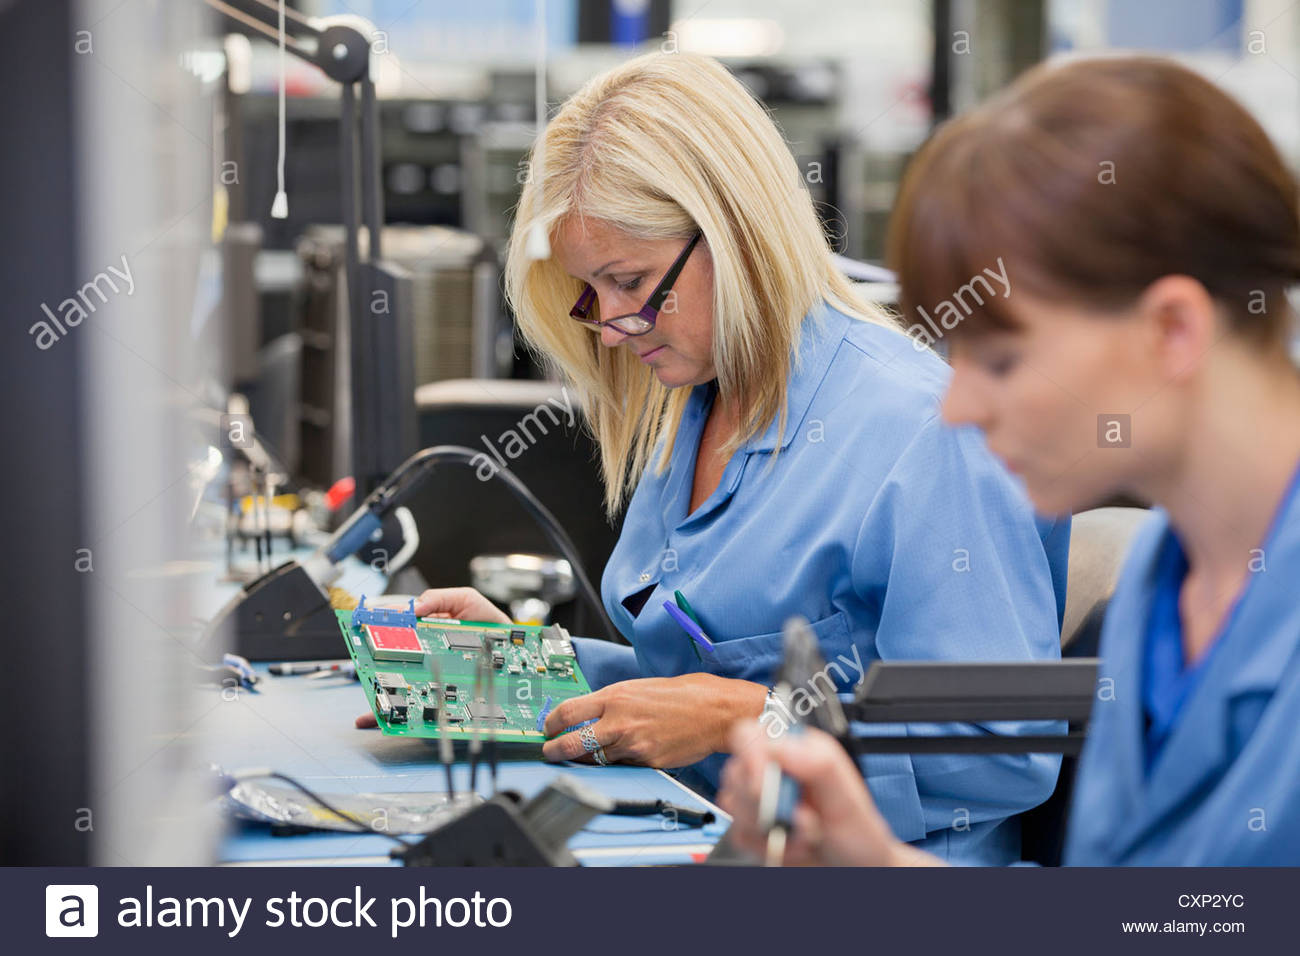 Circuit Boardpcb Mass Production Printed Board Product On Boards Stock Photos Technicians Examining In Hi Tech Electronics Manufacturing Plant Image